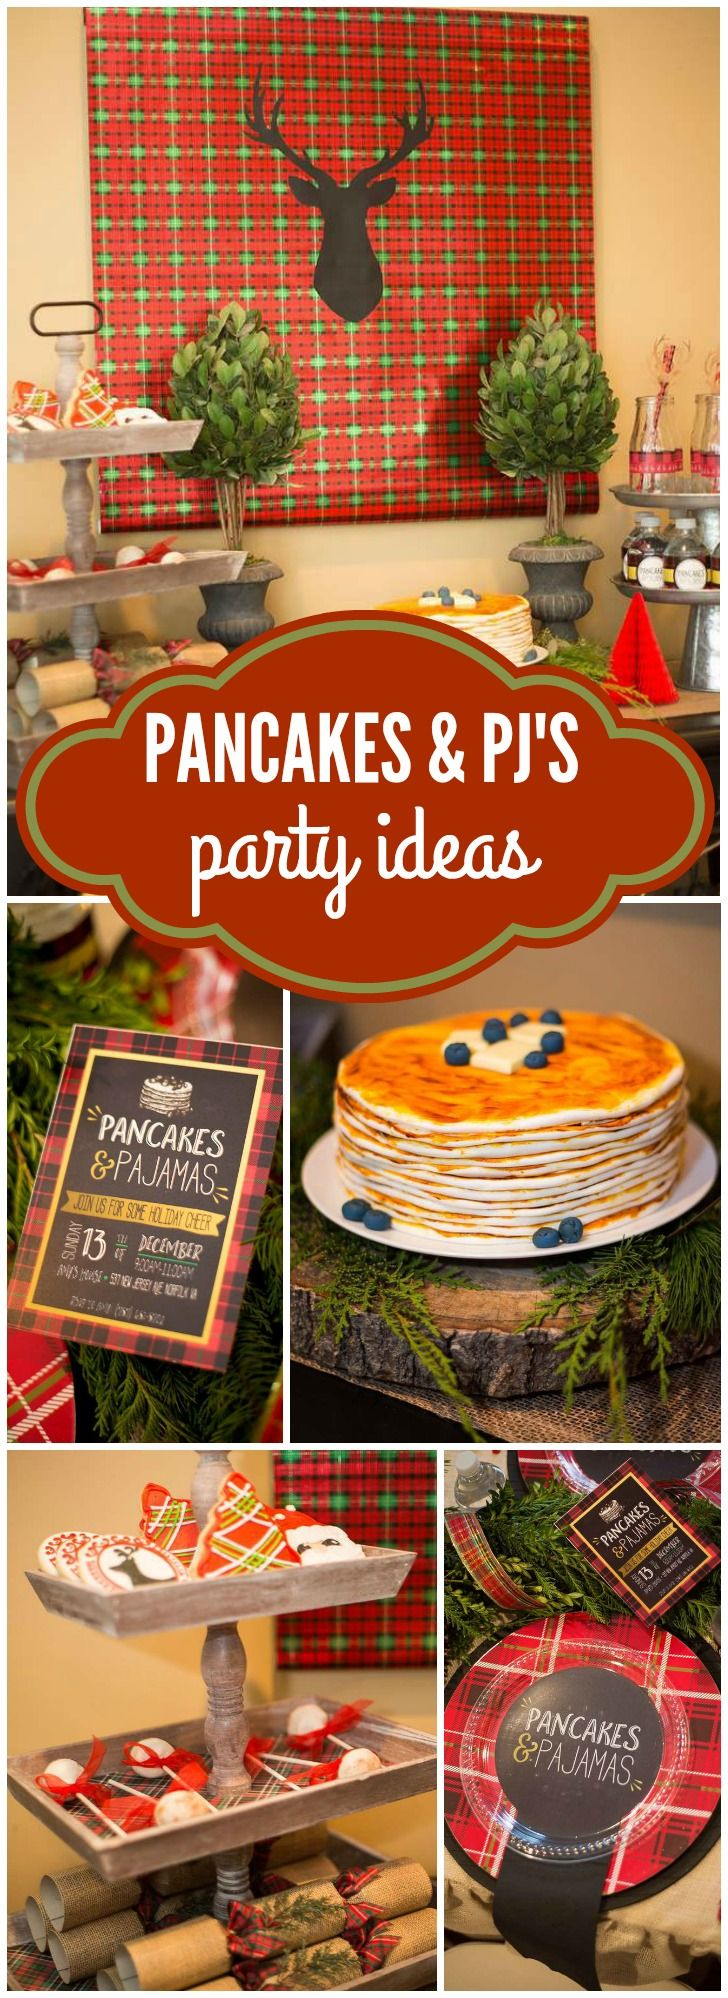 Check out this rustic pancakes and pajamas party in plaid and burlap! See more party ideas at CatchMyParty.com!